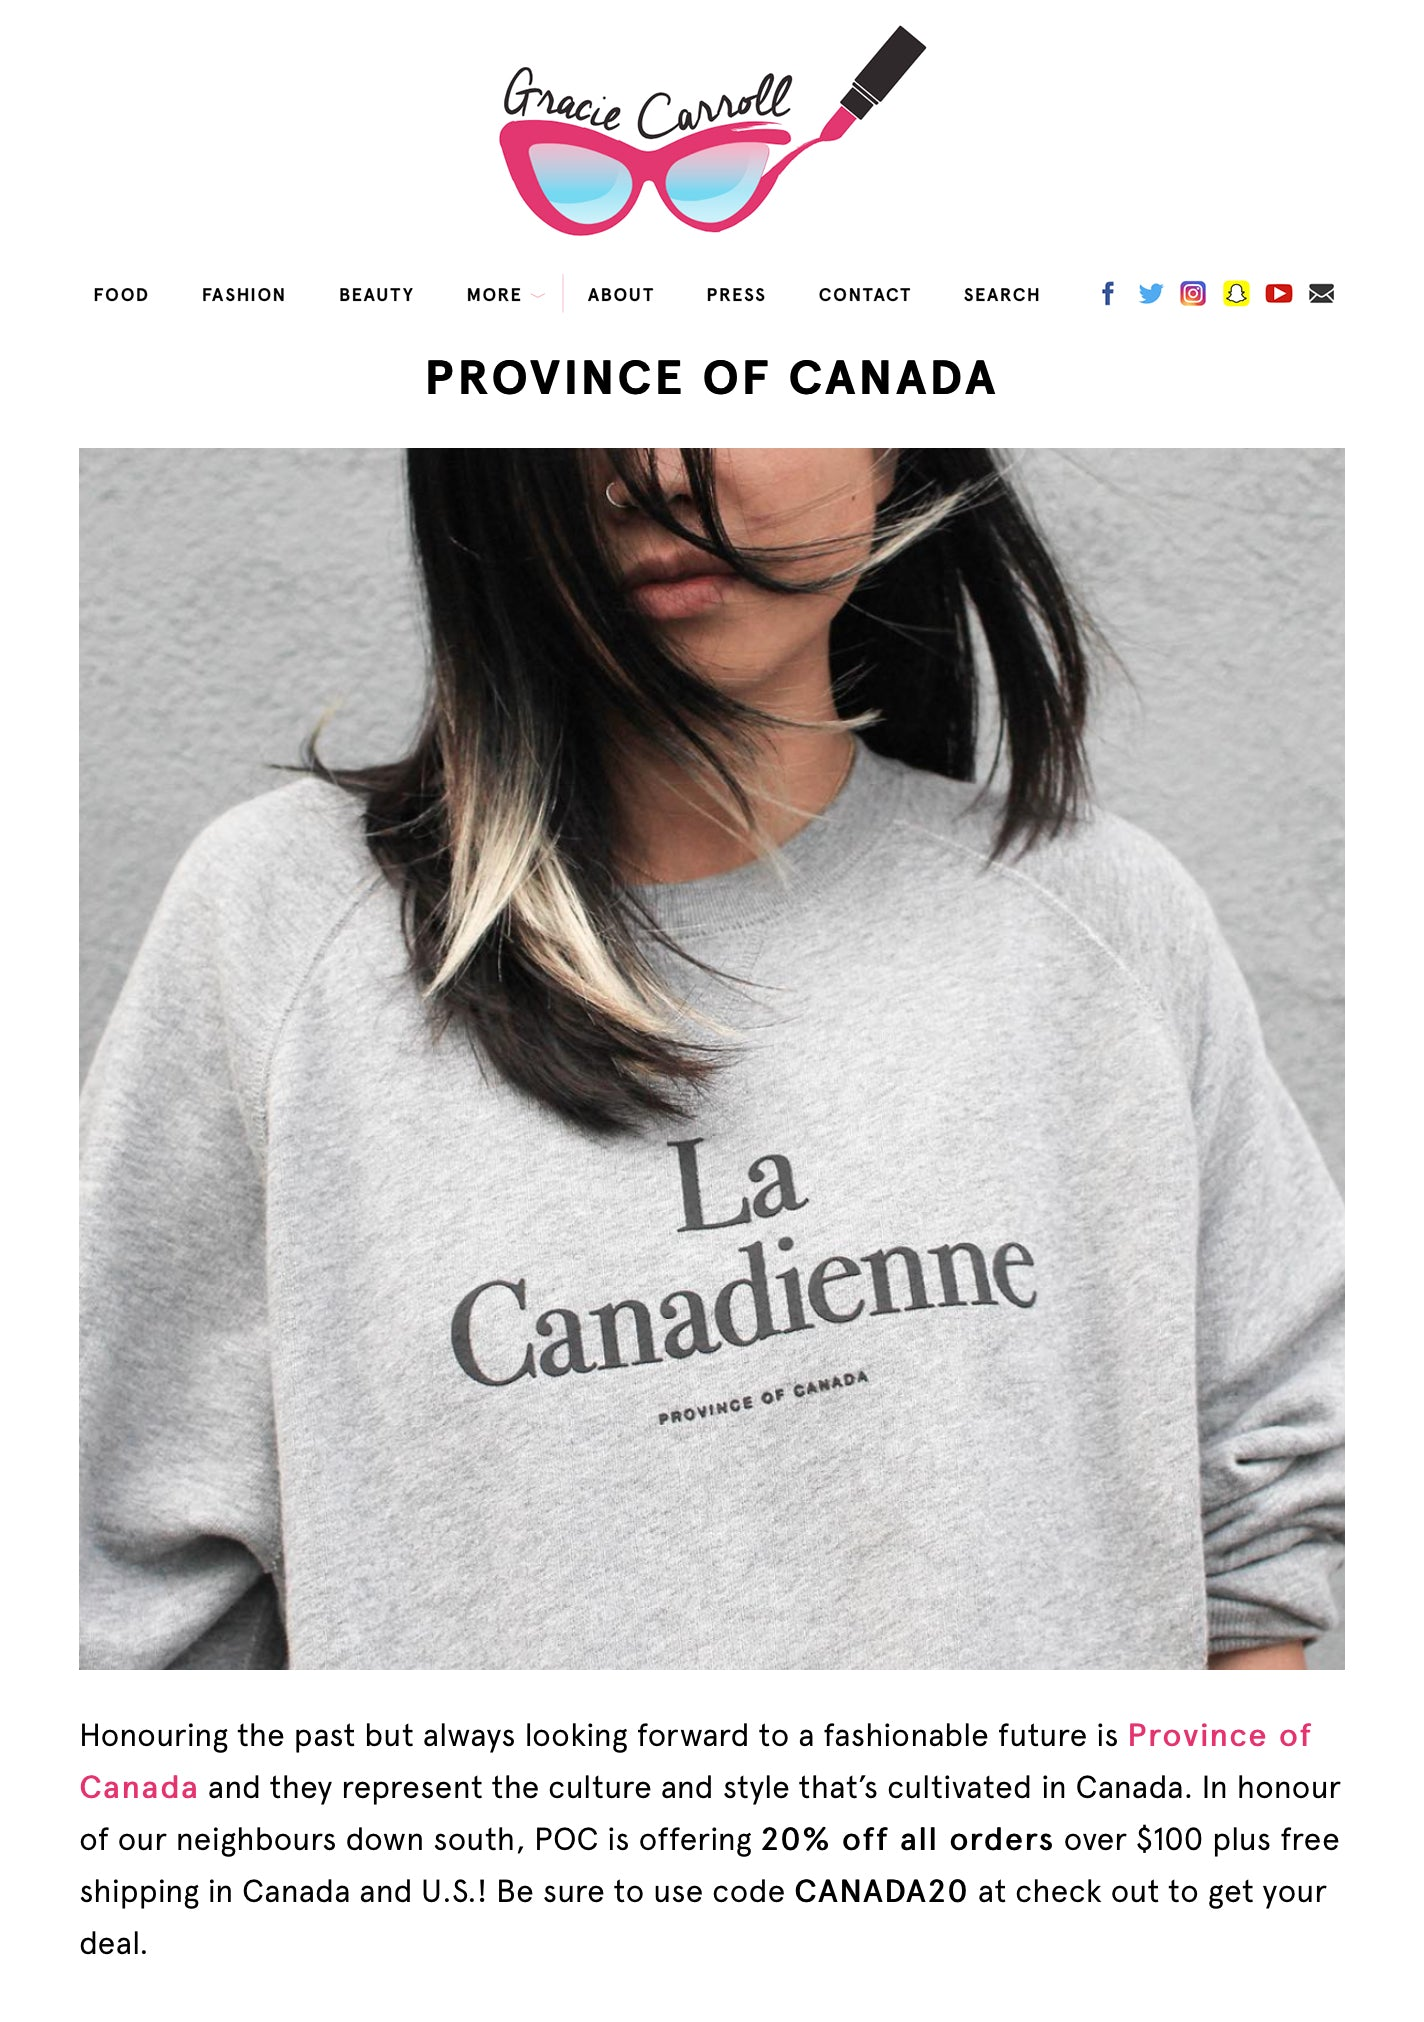 Province of Canada - Gracie Carroll Feature